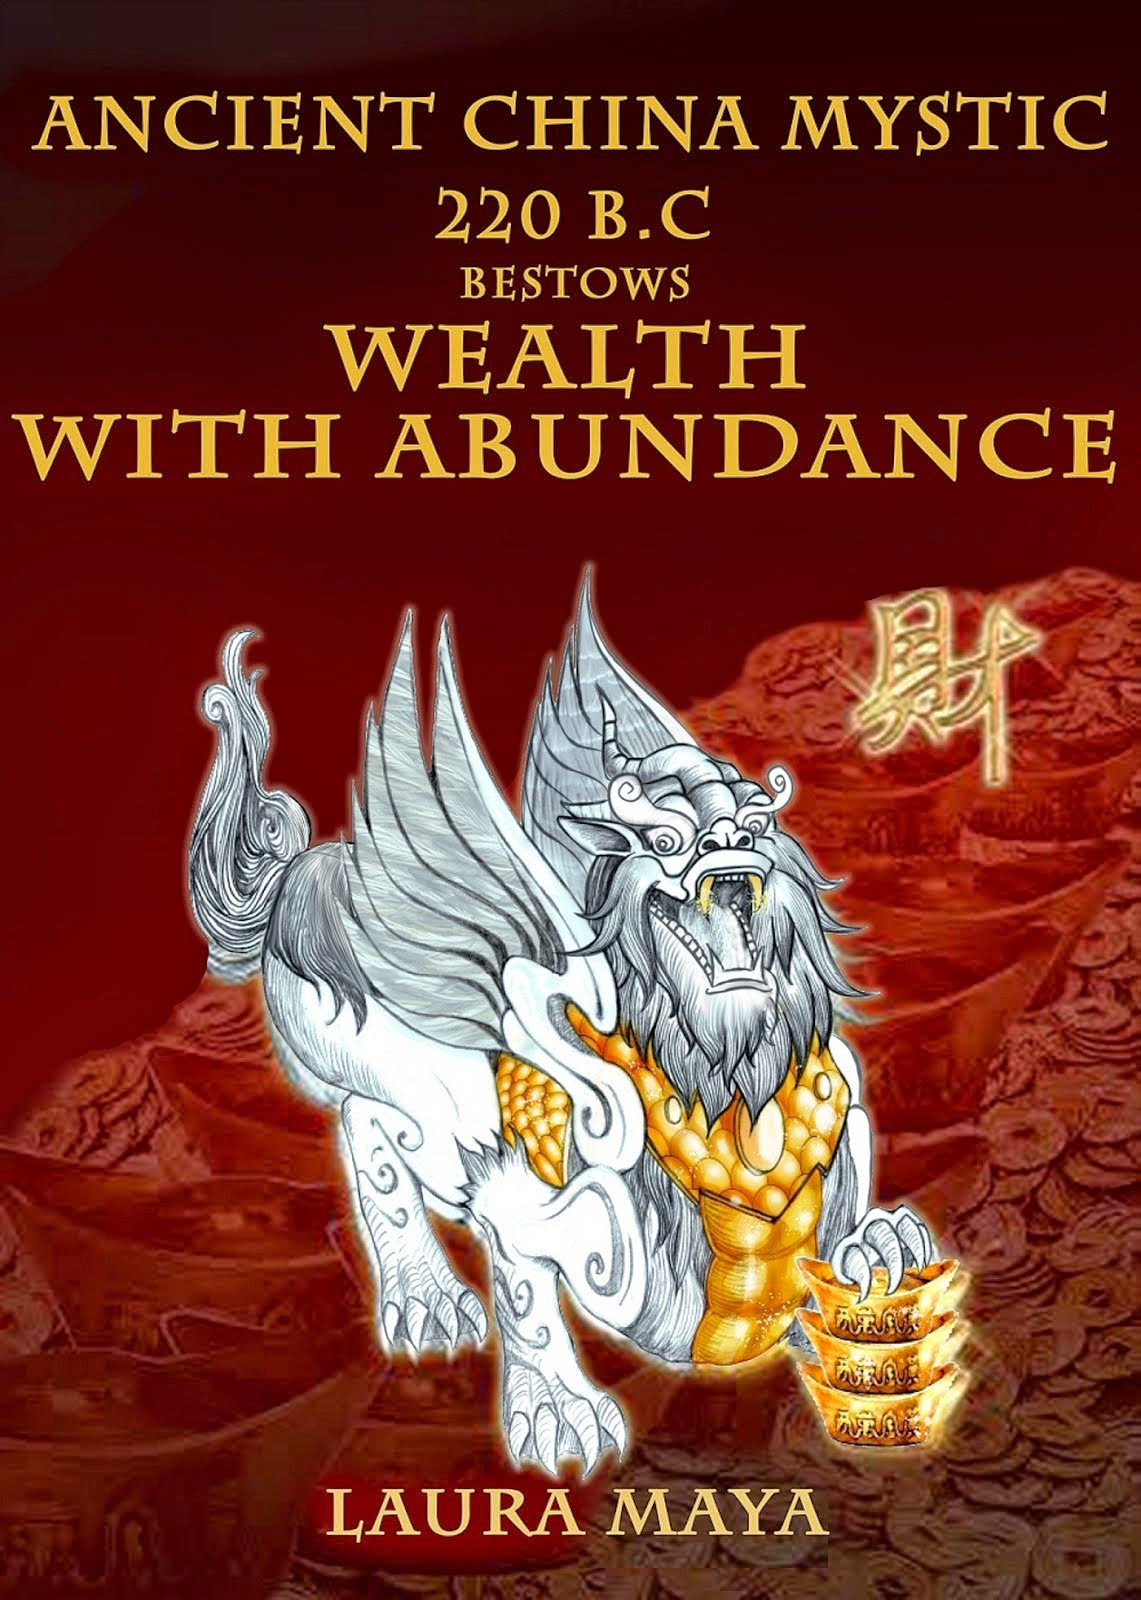 Anceint China Mystic 220 B.C Bestows Wealth with Abundance